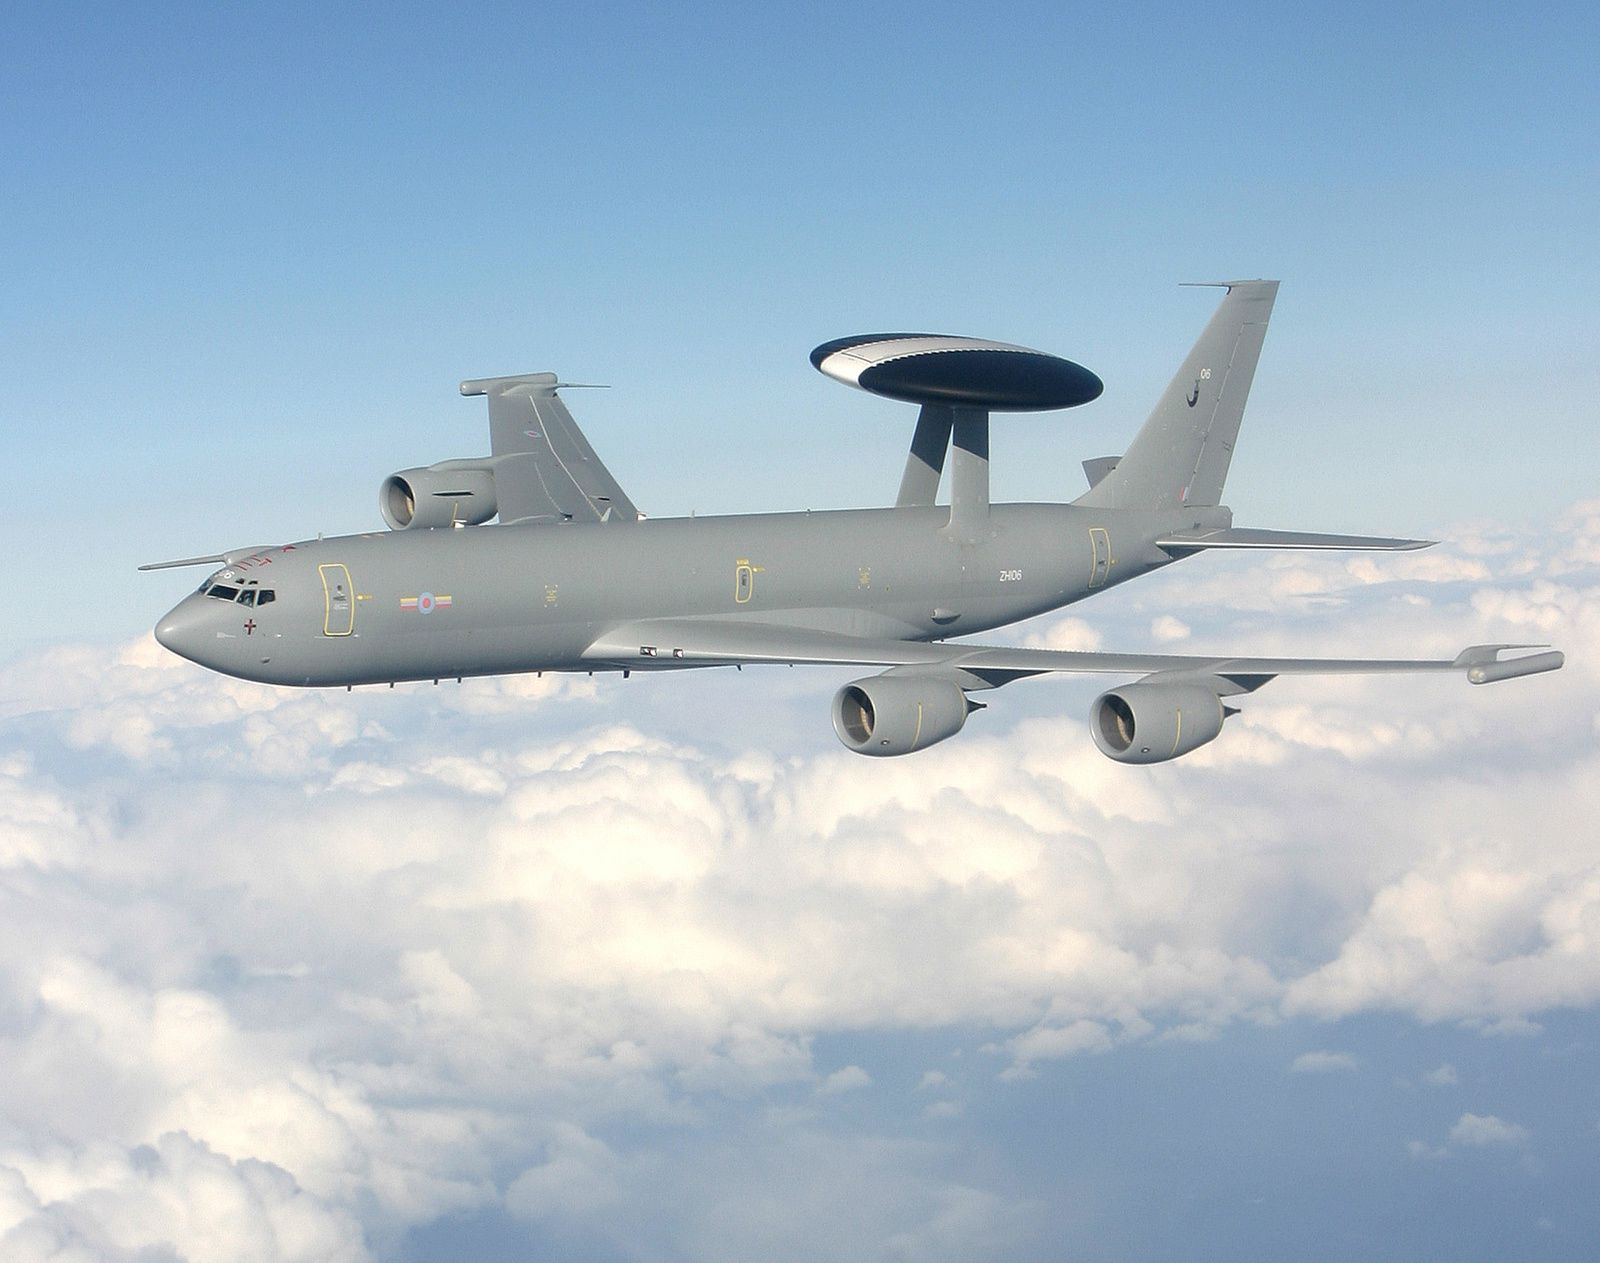 © Royal Air Force - E-3D Sentry AWACS de la RAF lors d'une mission.